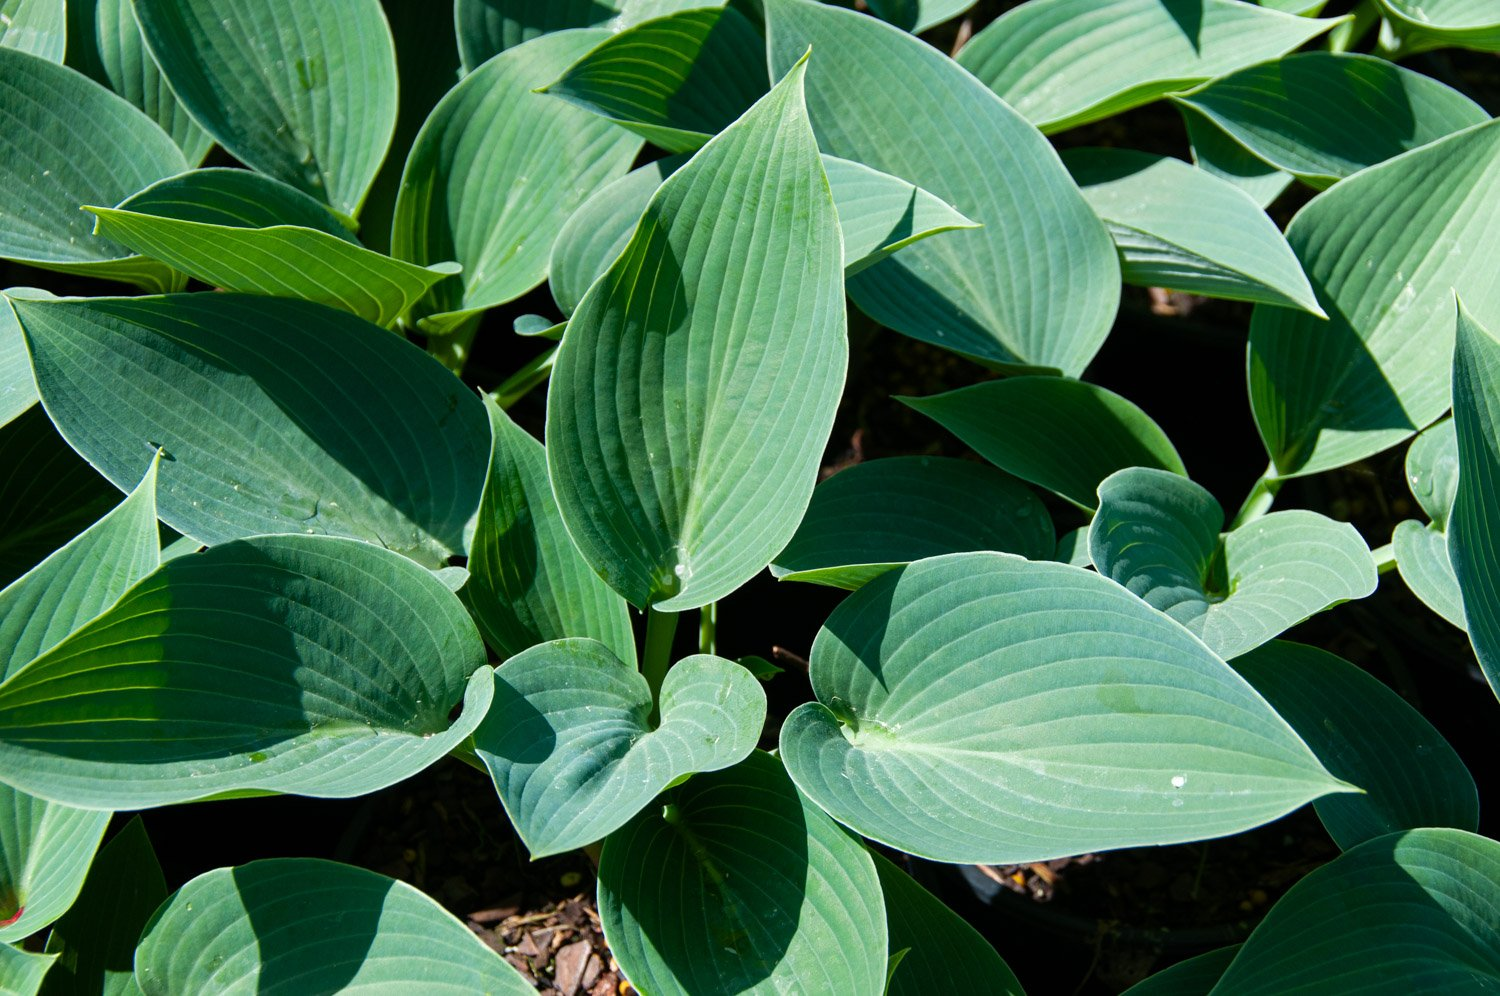 Hosta 'Halcyon' has bluish green ribbed leaves